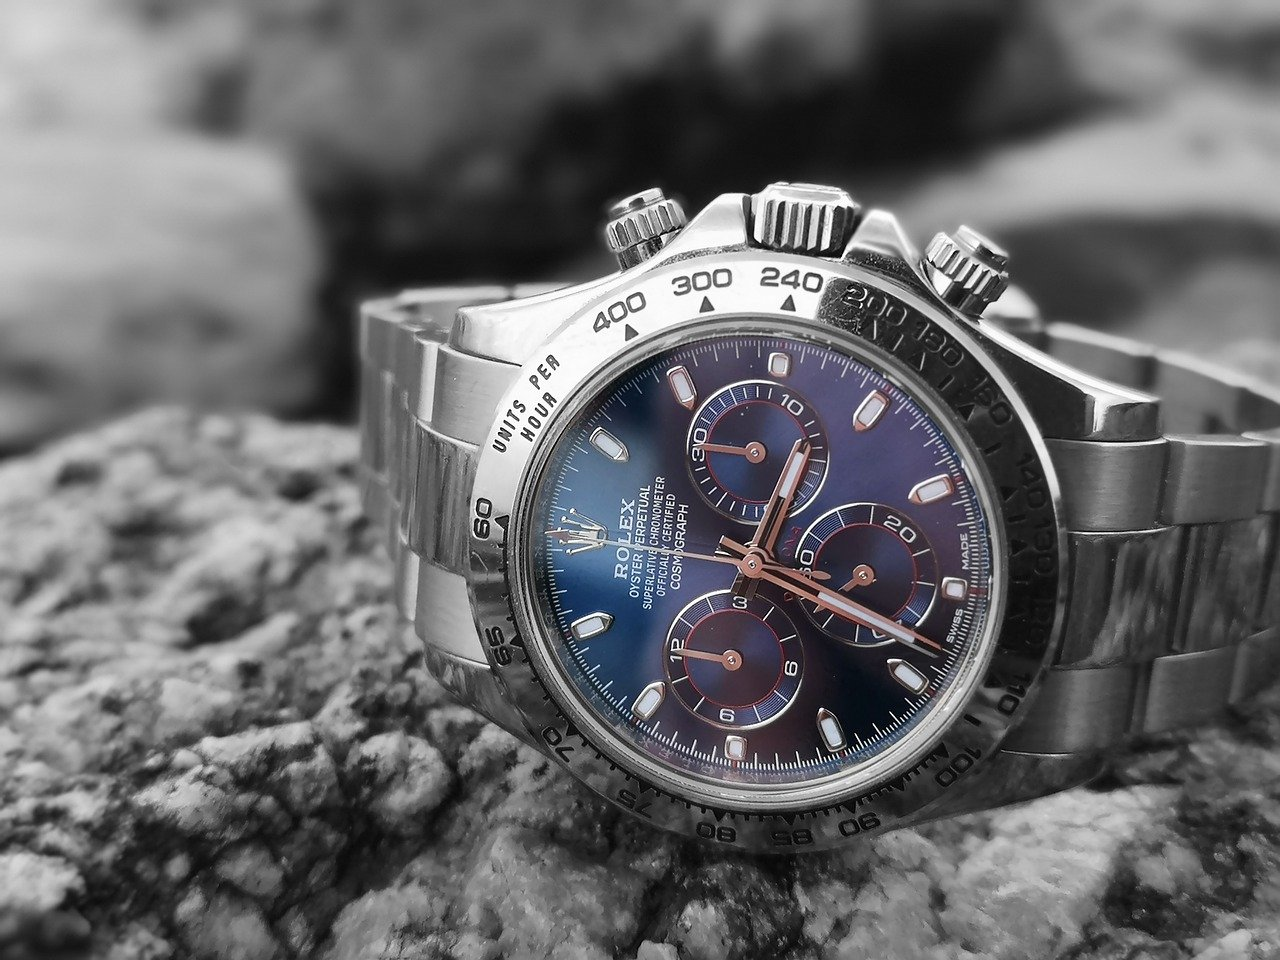 A Rolex on top of a rock